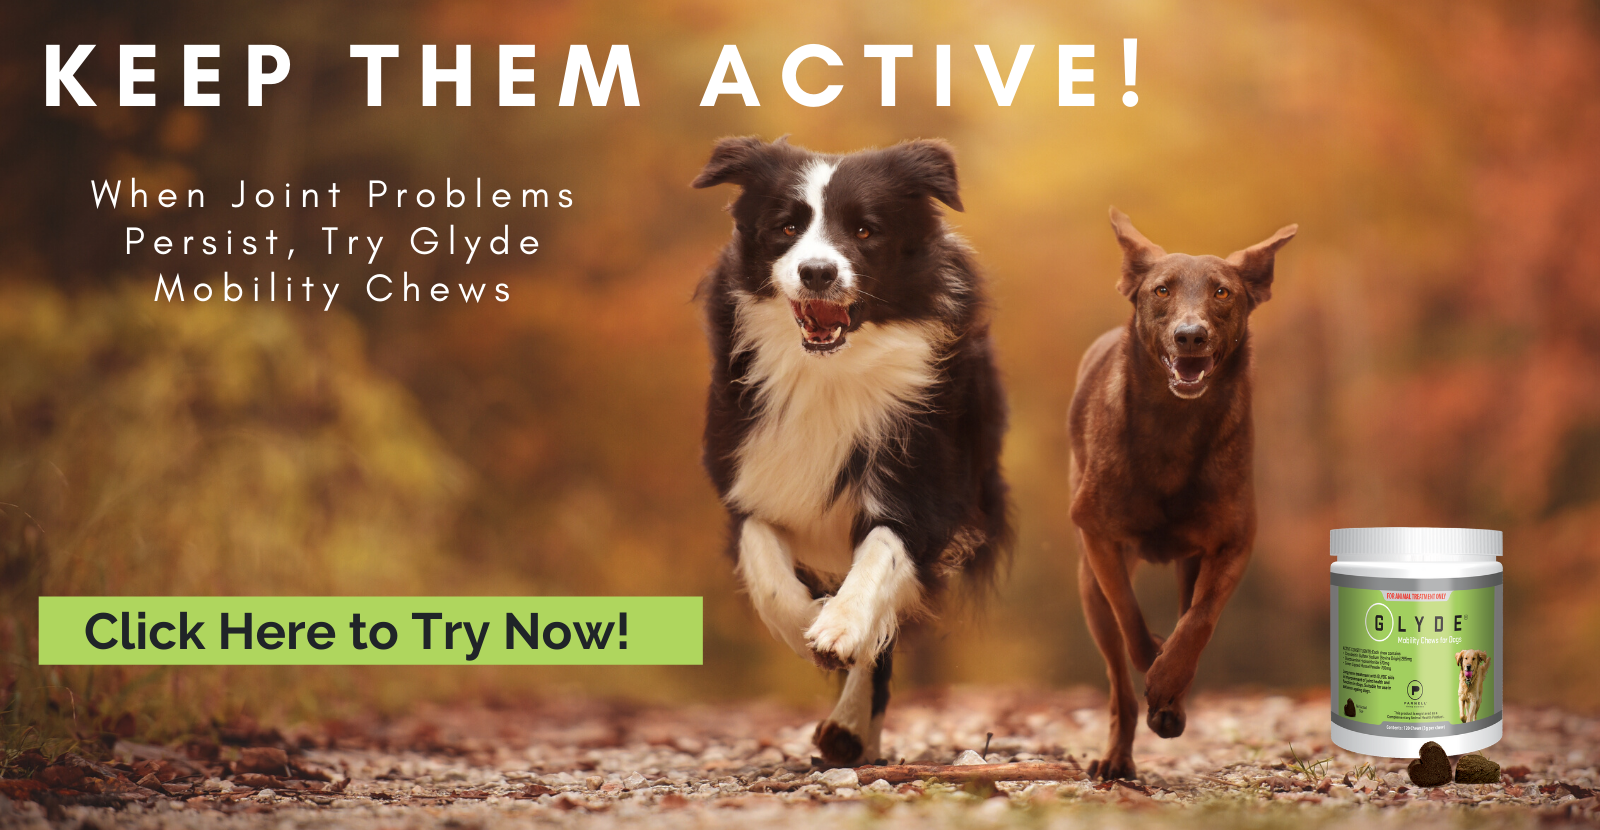 Try Glyde Mobility Chews Now!